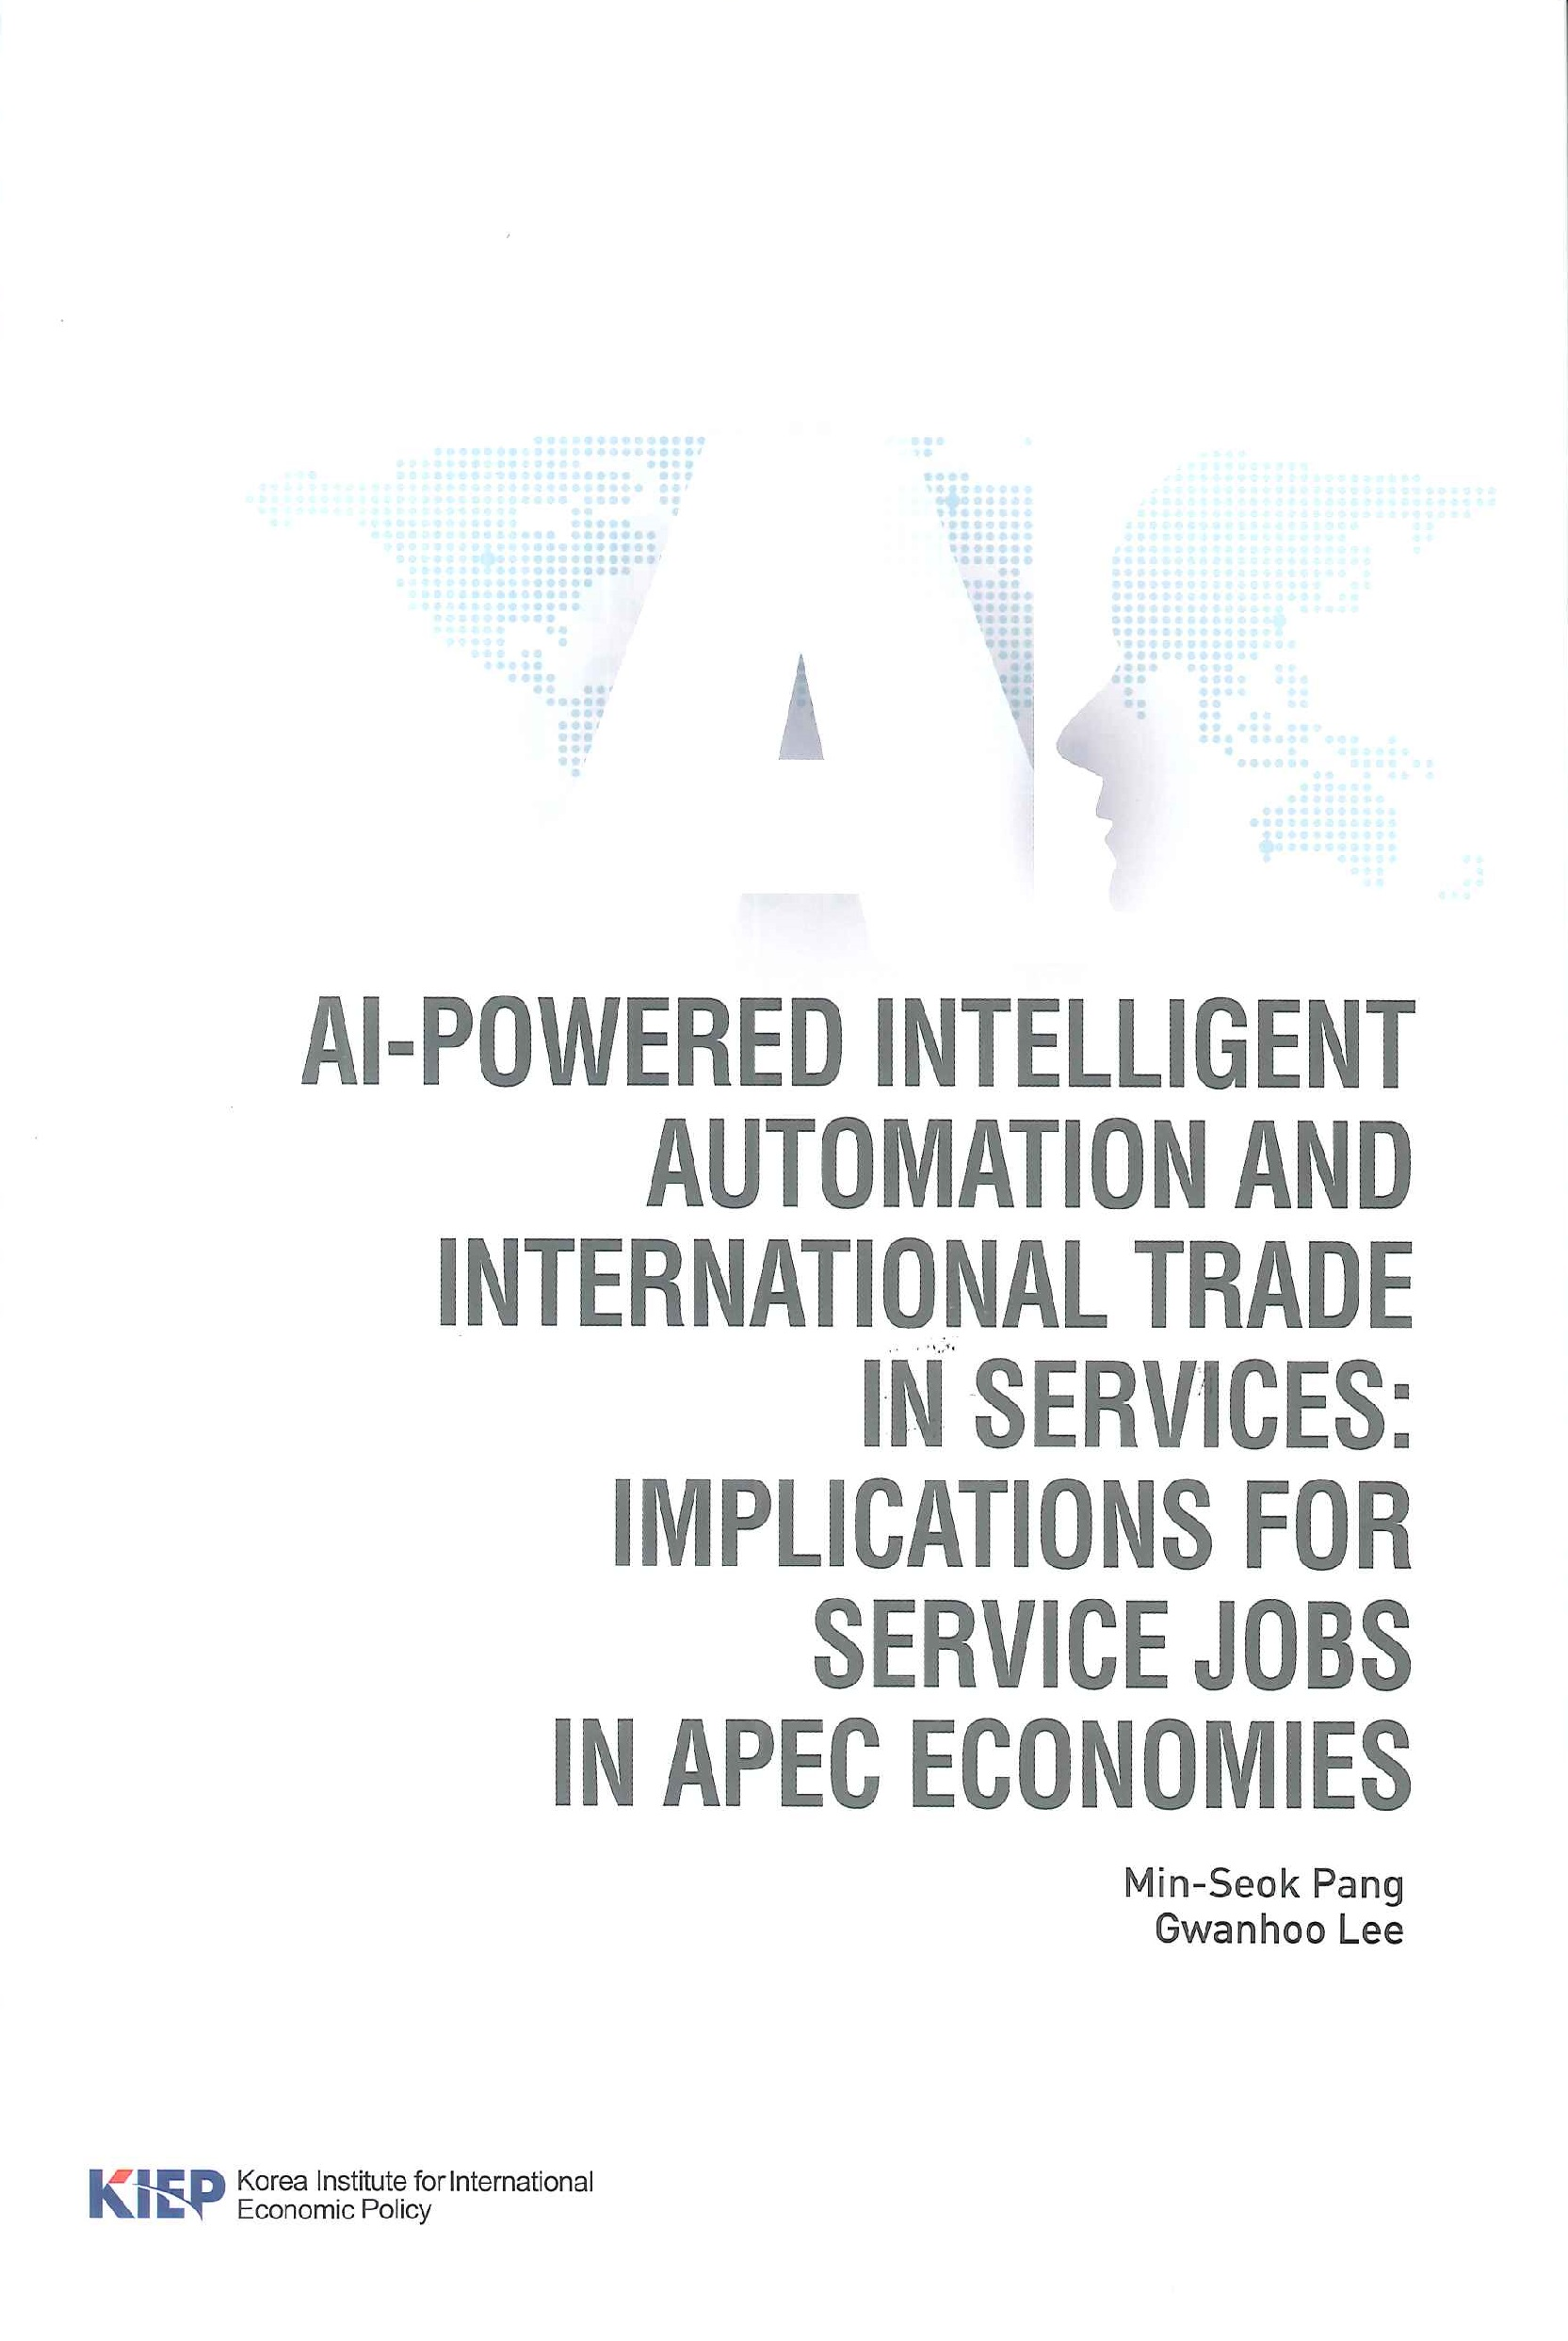 AI-powered intelligent automation and international trade in services:implications for service jobs in APEC economies